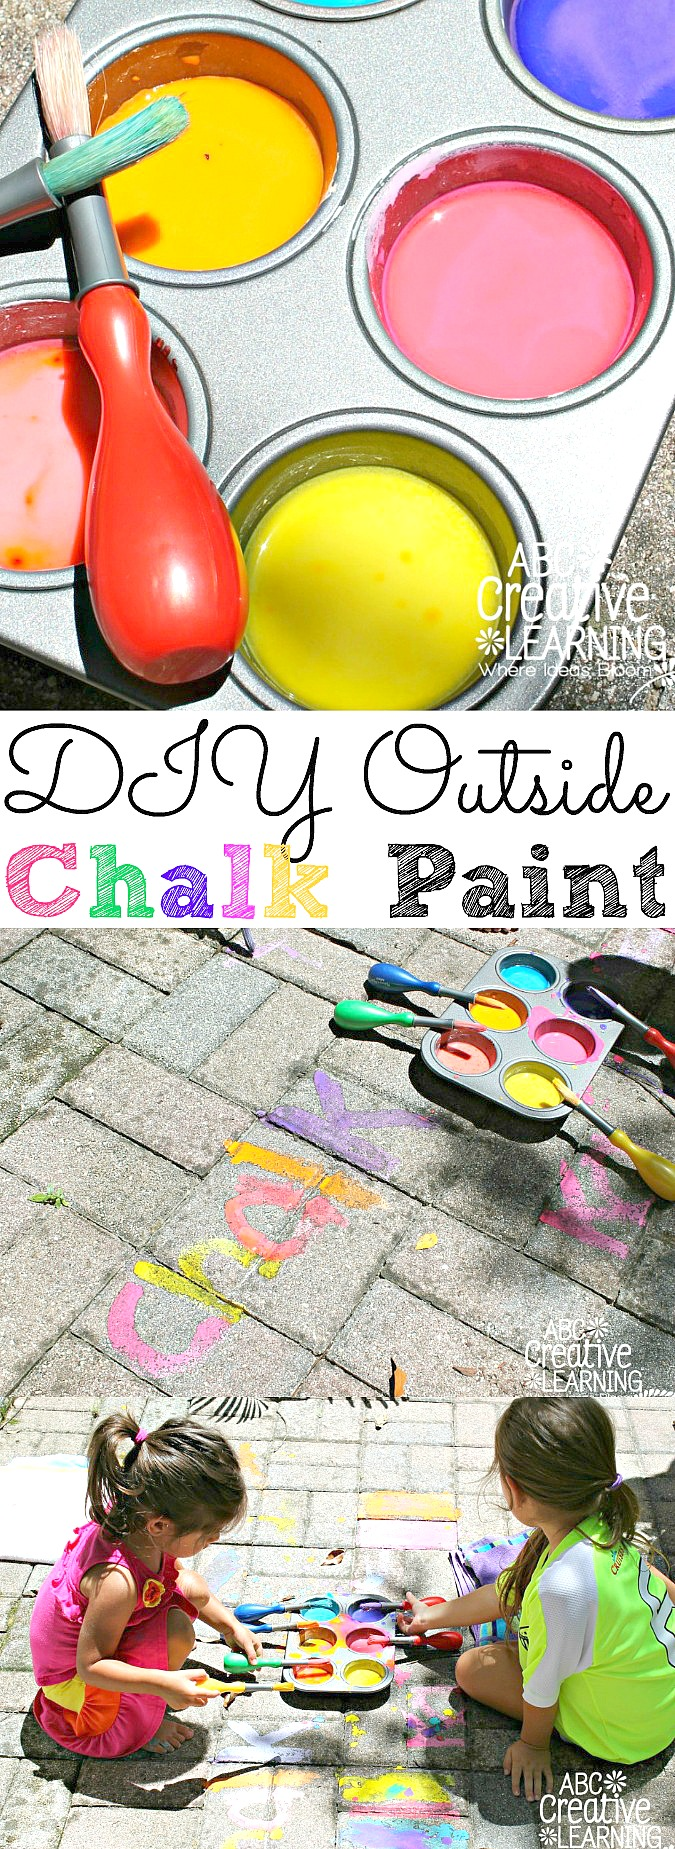 DIY Outside Chalk Paint - abccreativelearning.com